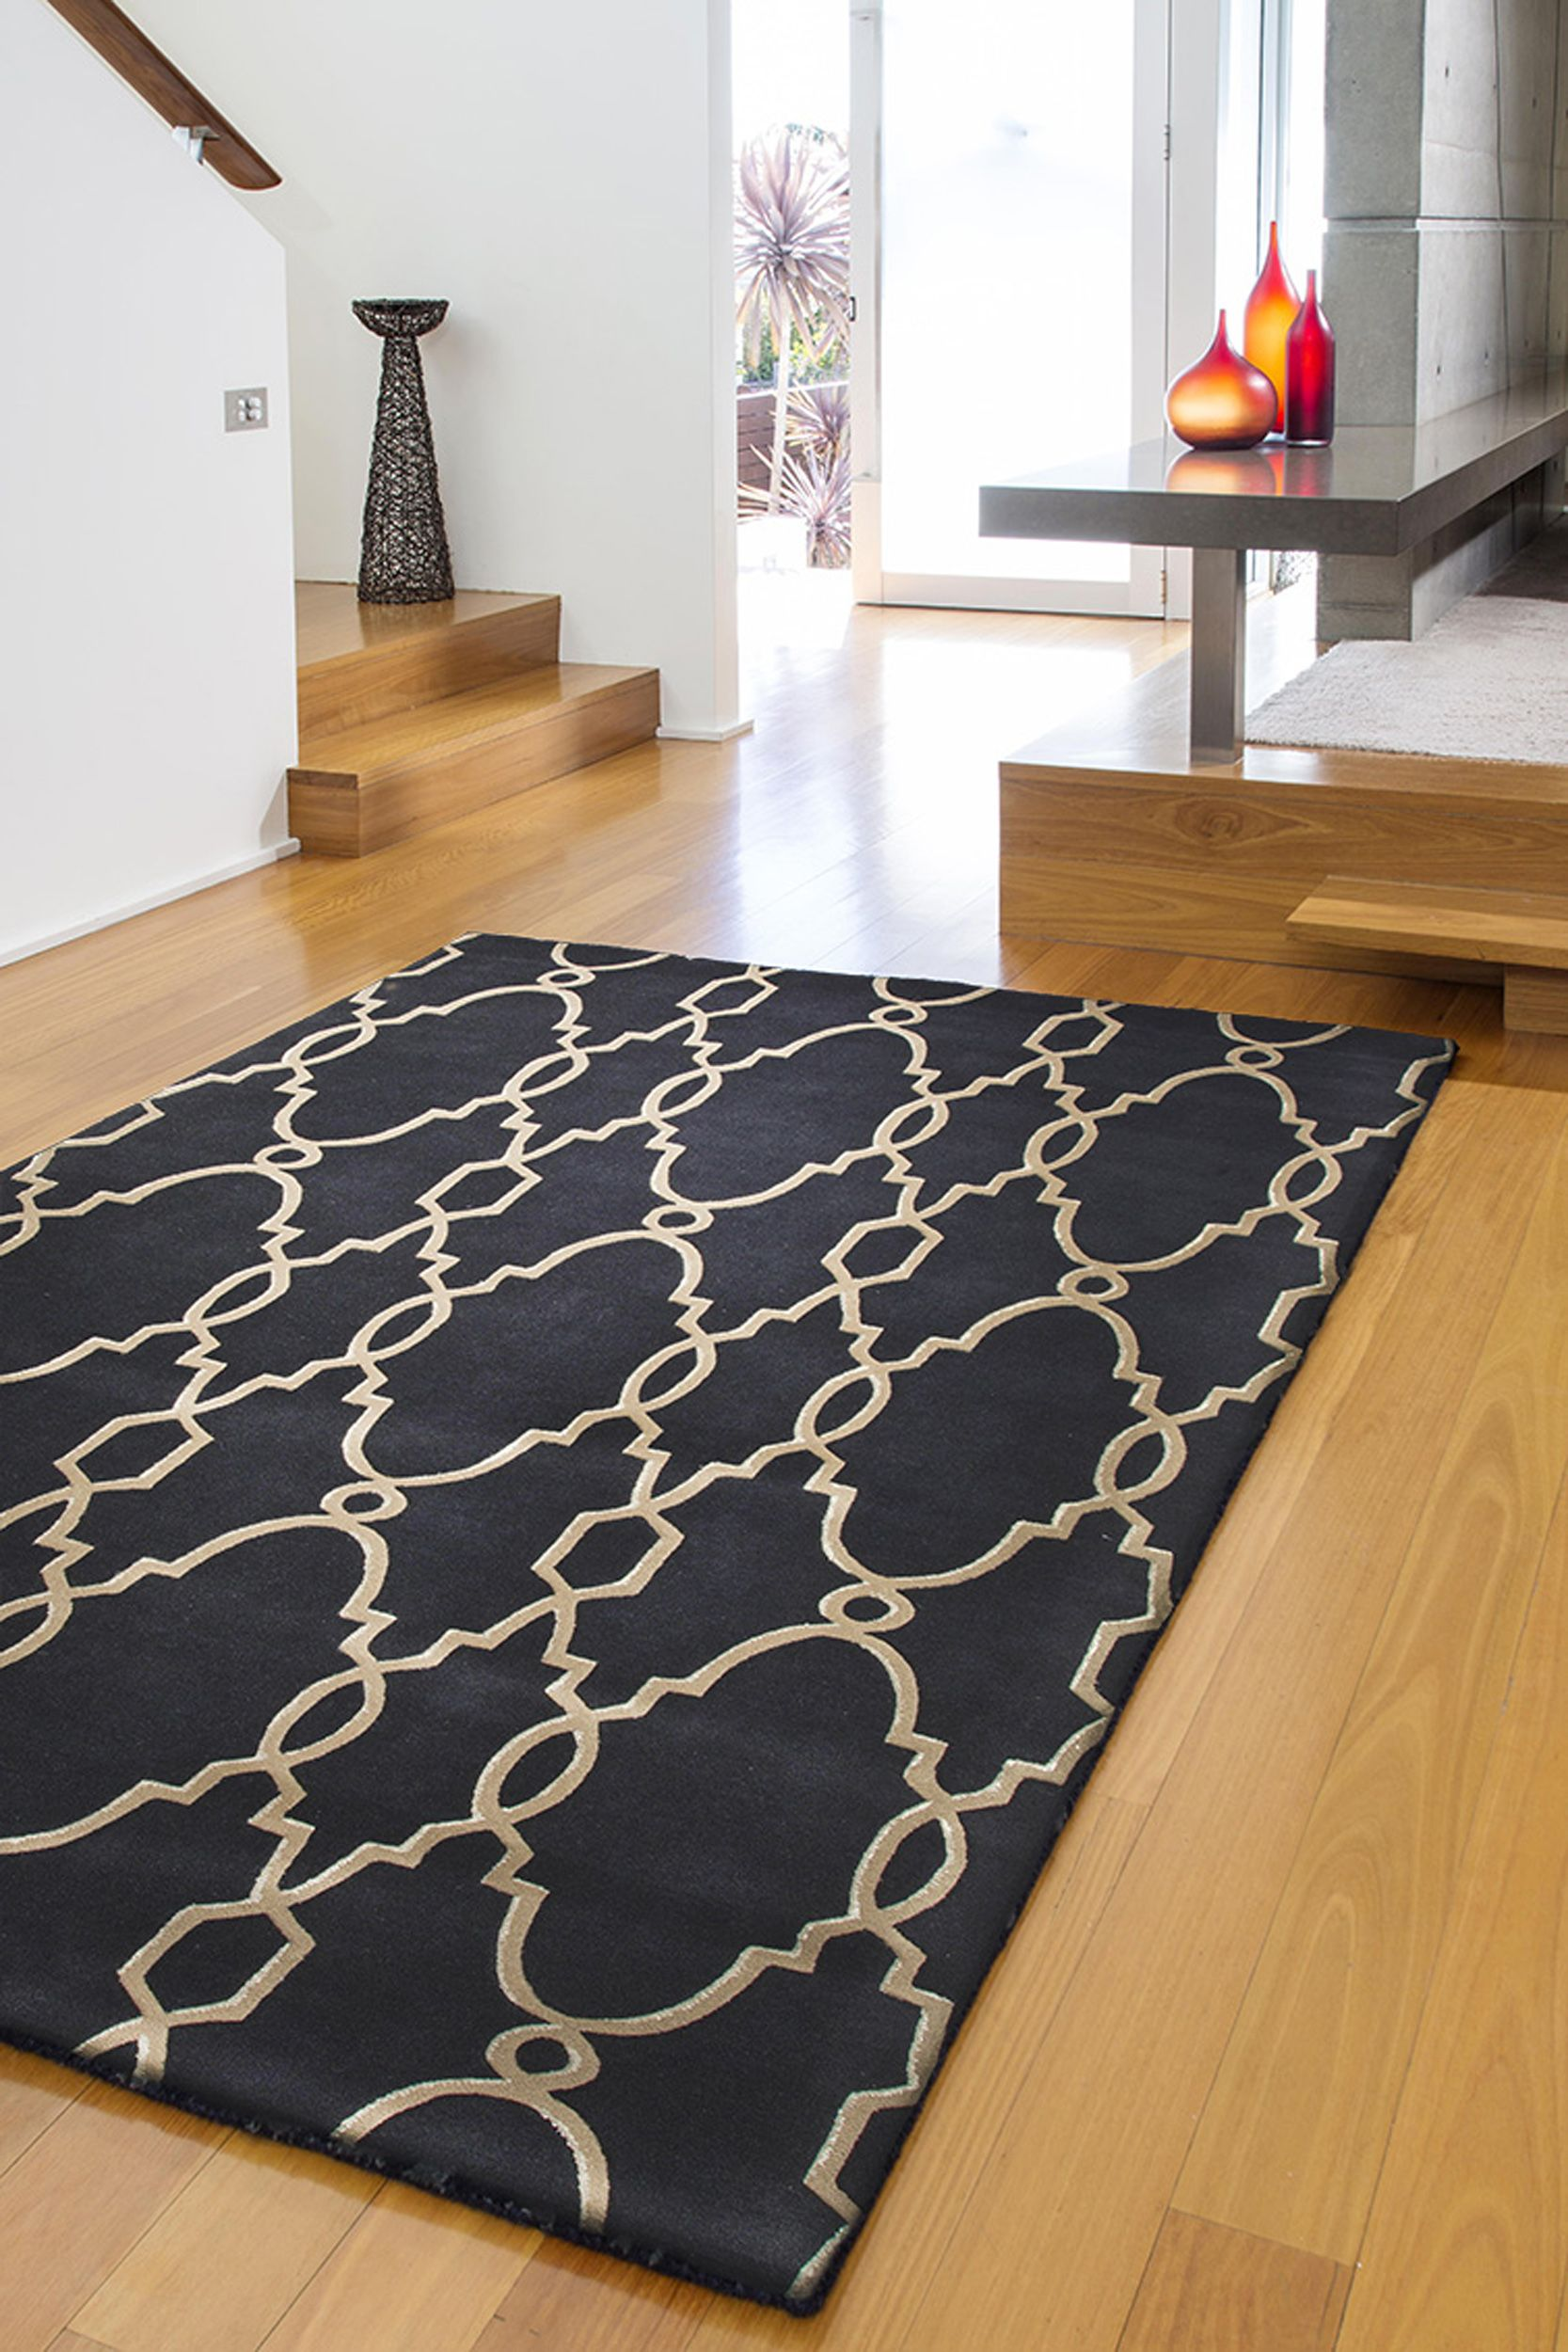 Samson The Saffron Collection Is Affordable Style Hand Tufted In New Zealand Wool Blend Selected Designs With Highlights Of Rugs Rug Design Rugs Australia